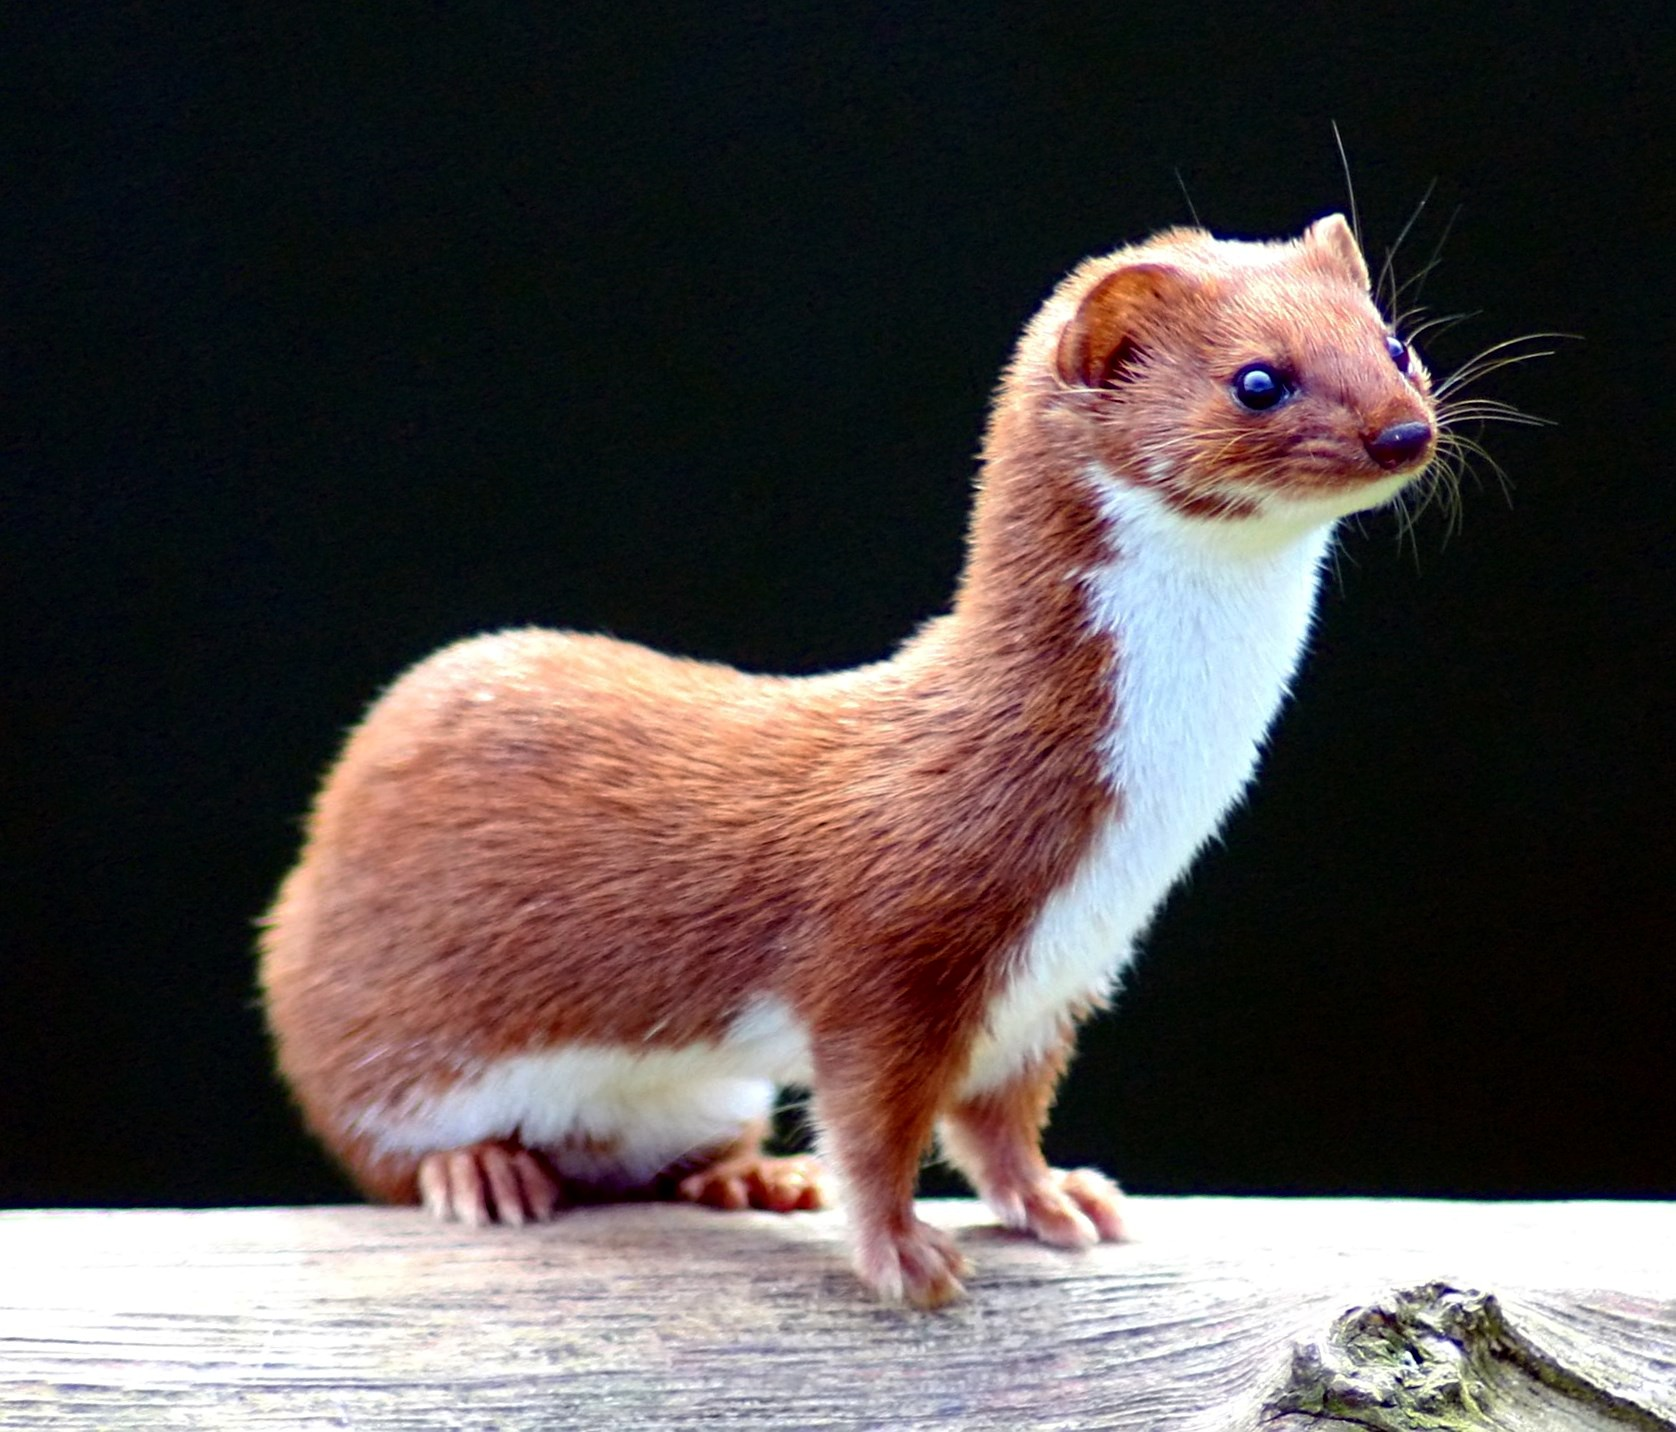 http://upload.wikimedia.org/wikipedia/commons/e/e3/Mustela_nivalis_-British_Wildlife_Centre-4.jpg